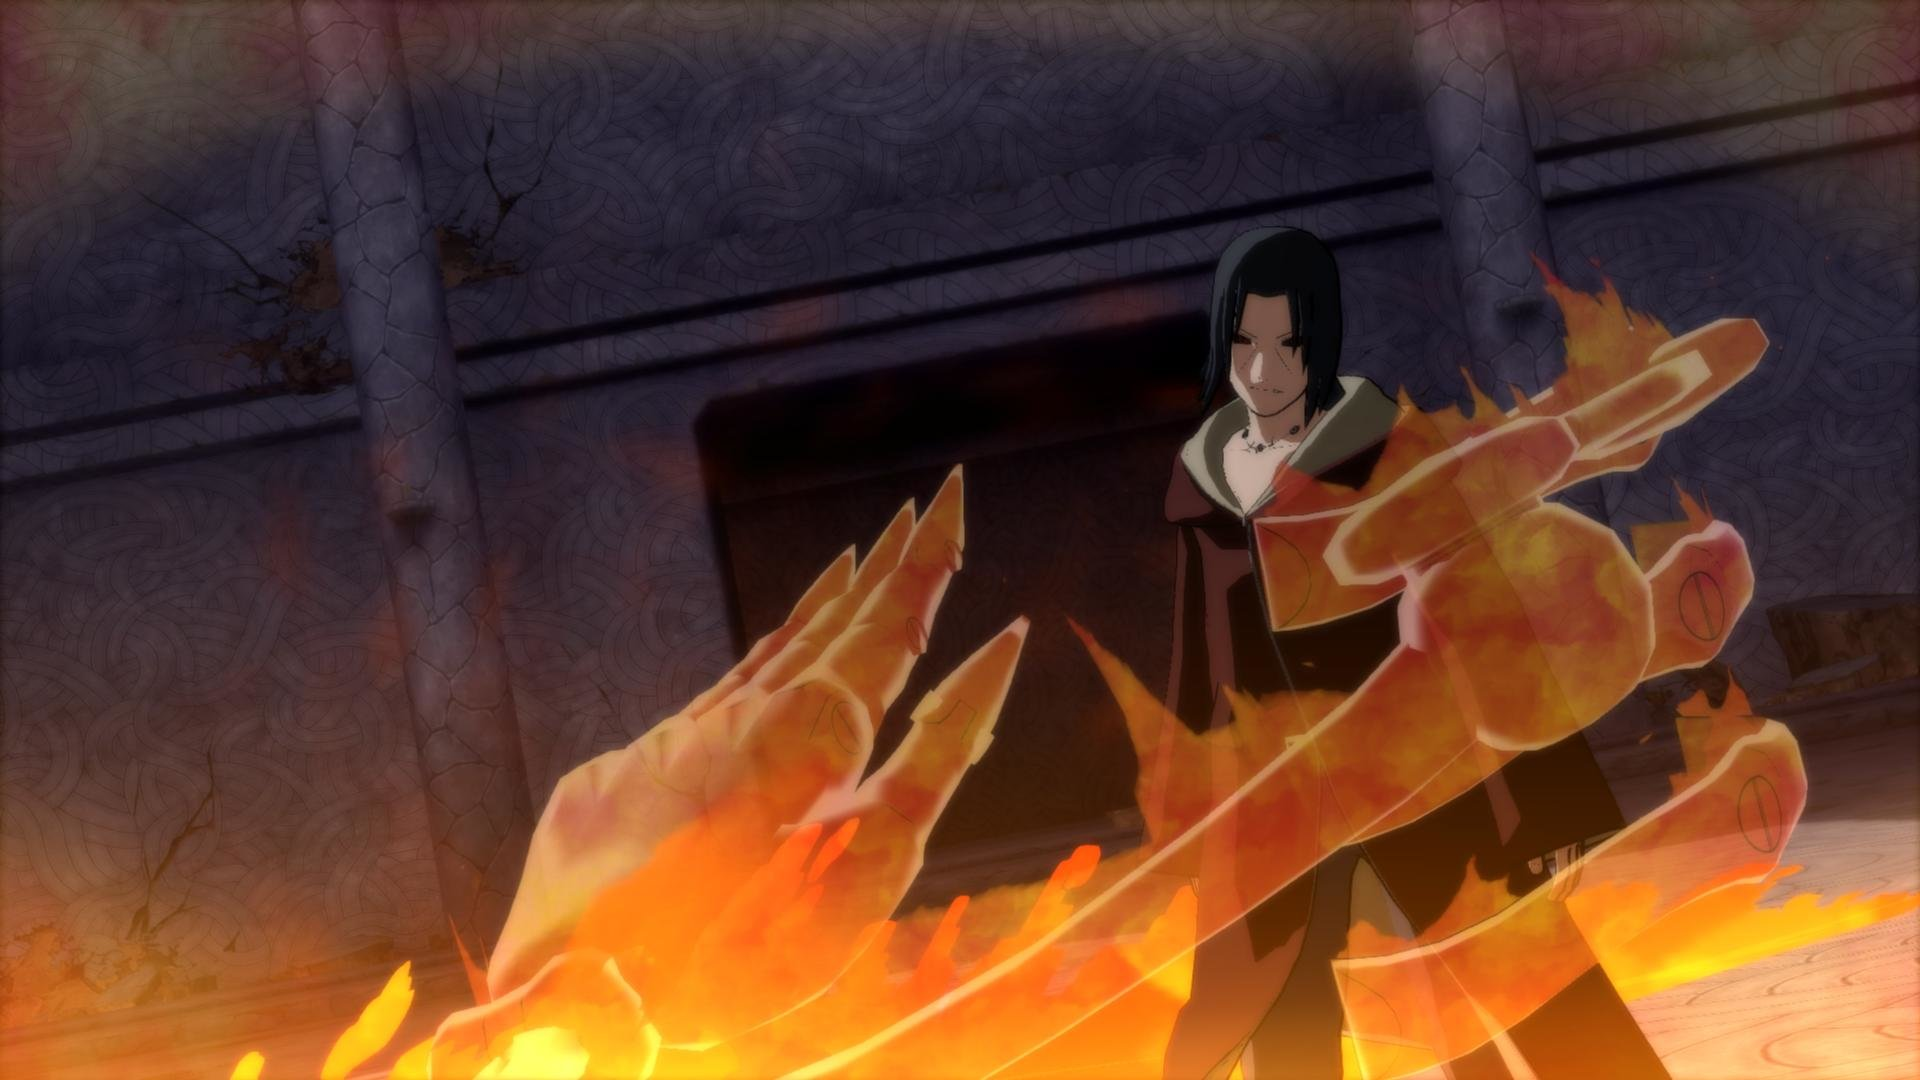 Awesome Naruto Shippuden: Ultimate Ninja Storm Revolution 5 free wallpaper ID:422809 for hd 1920x1080 computer